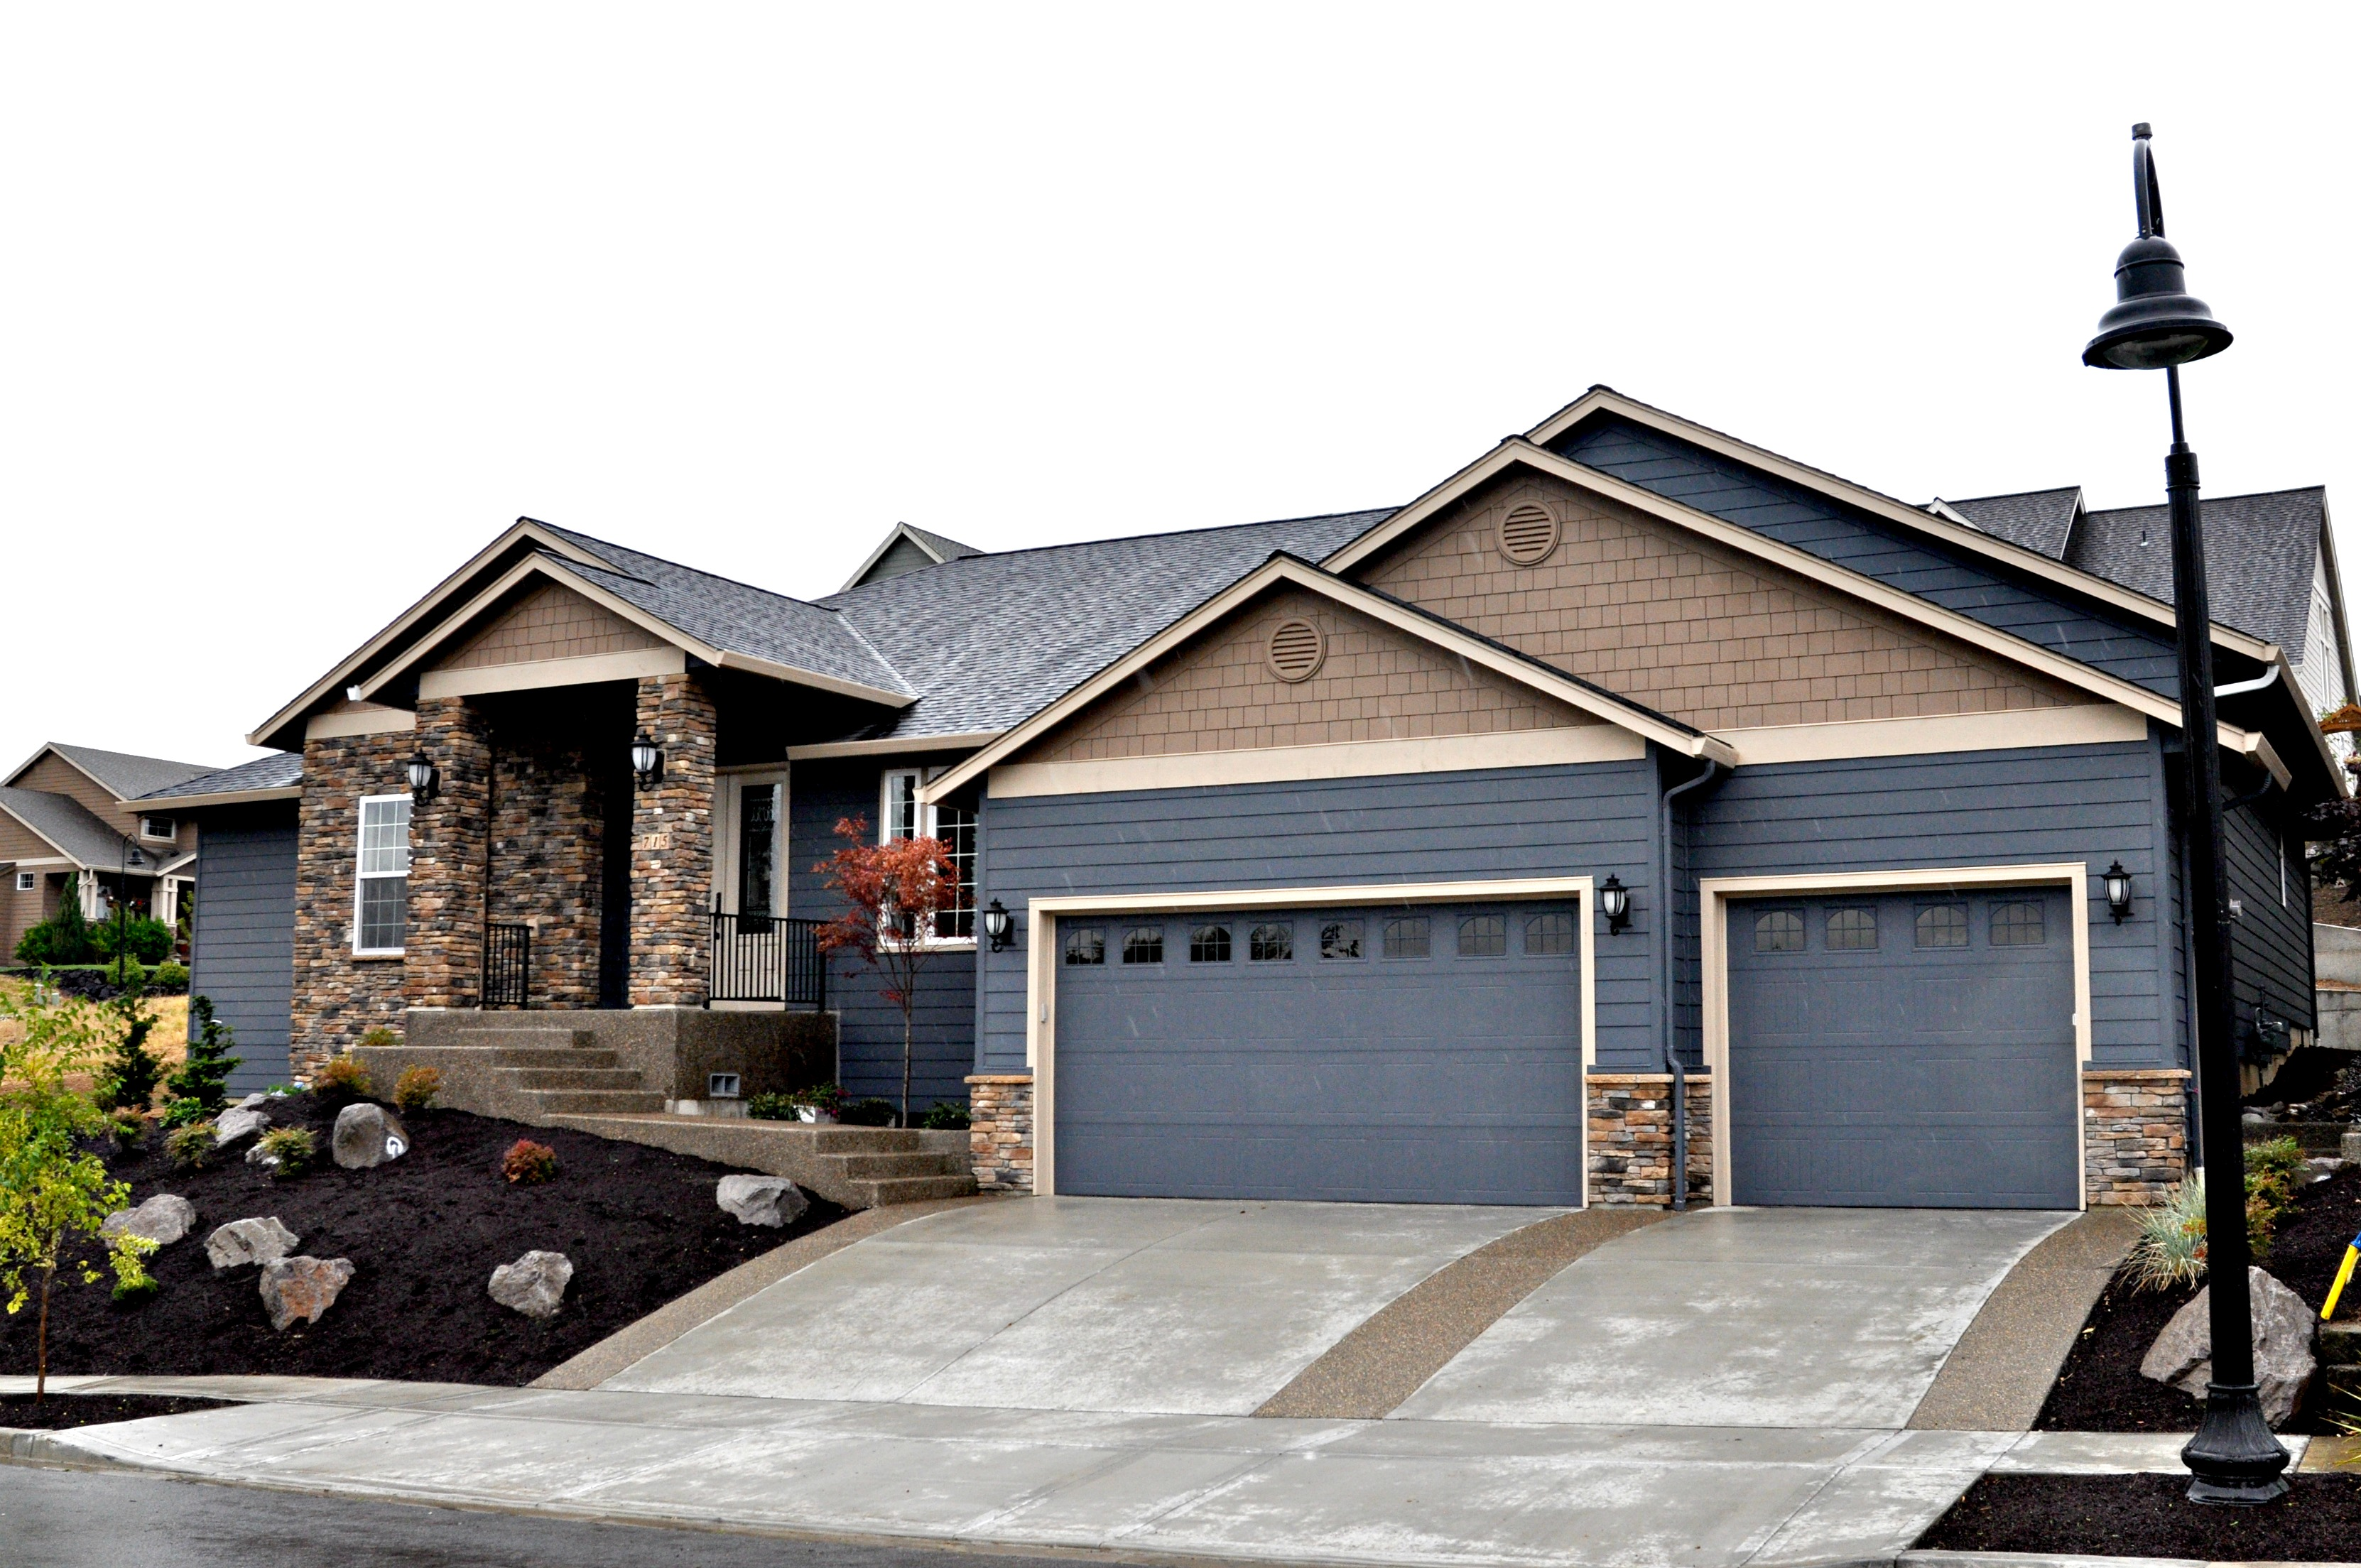 Mill Plain, Washington - Clark County, Washington - Custom Home Construction